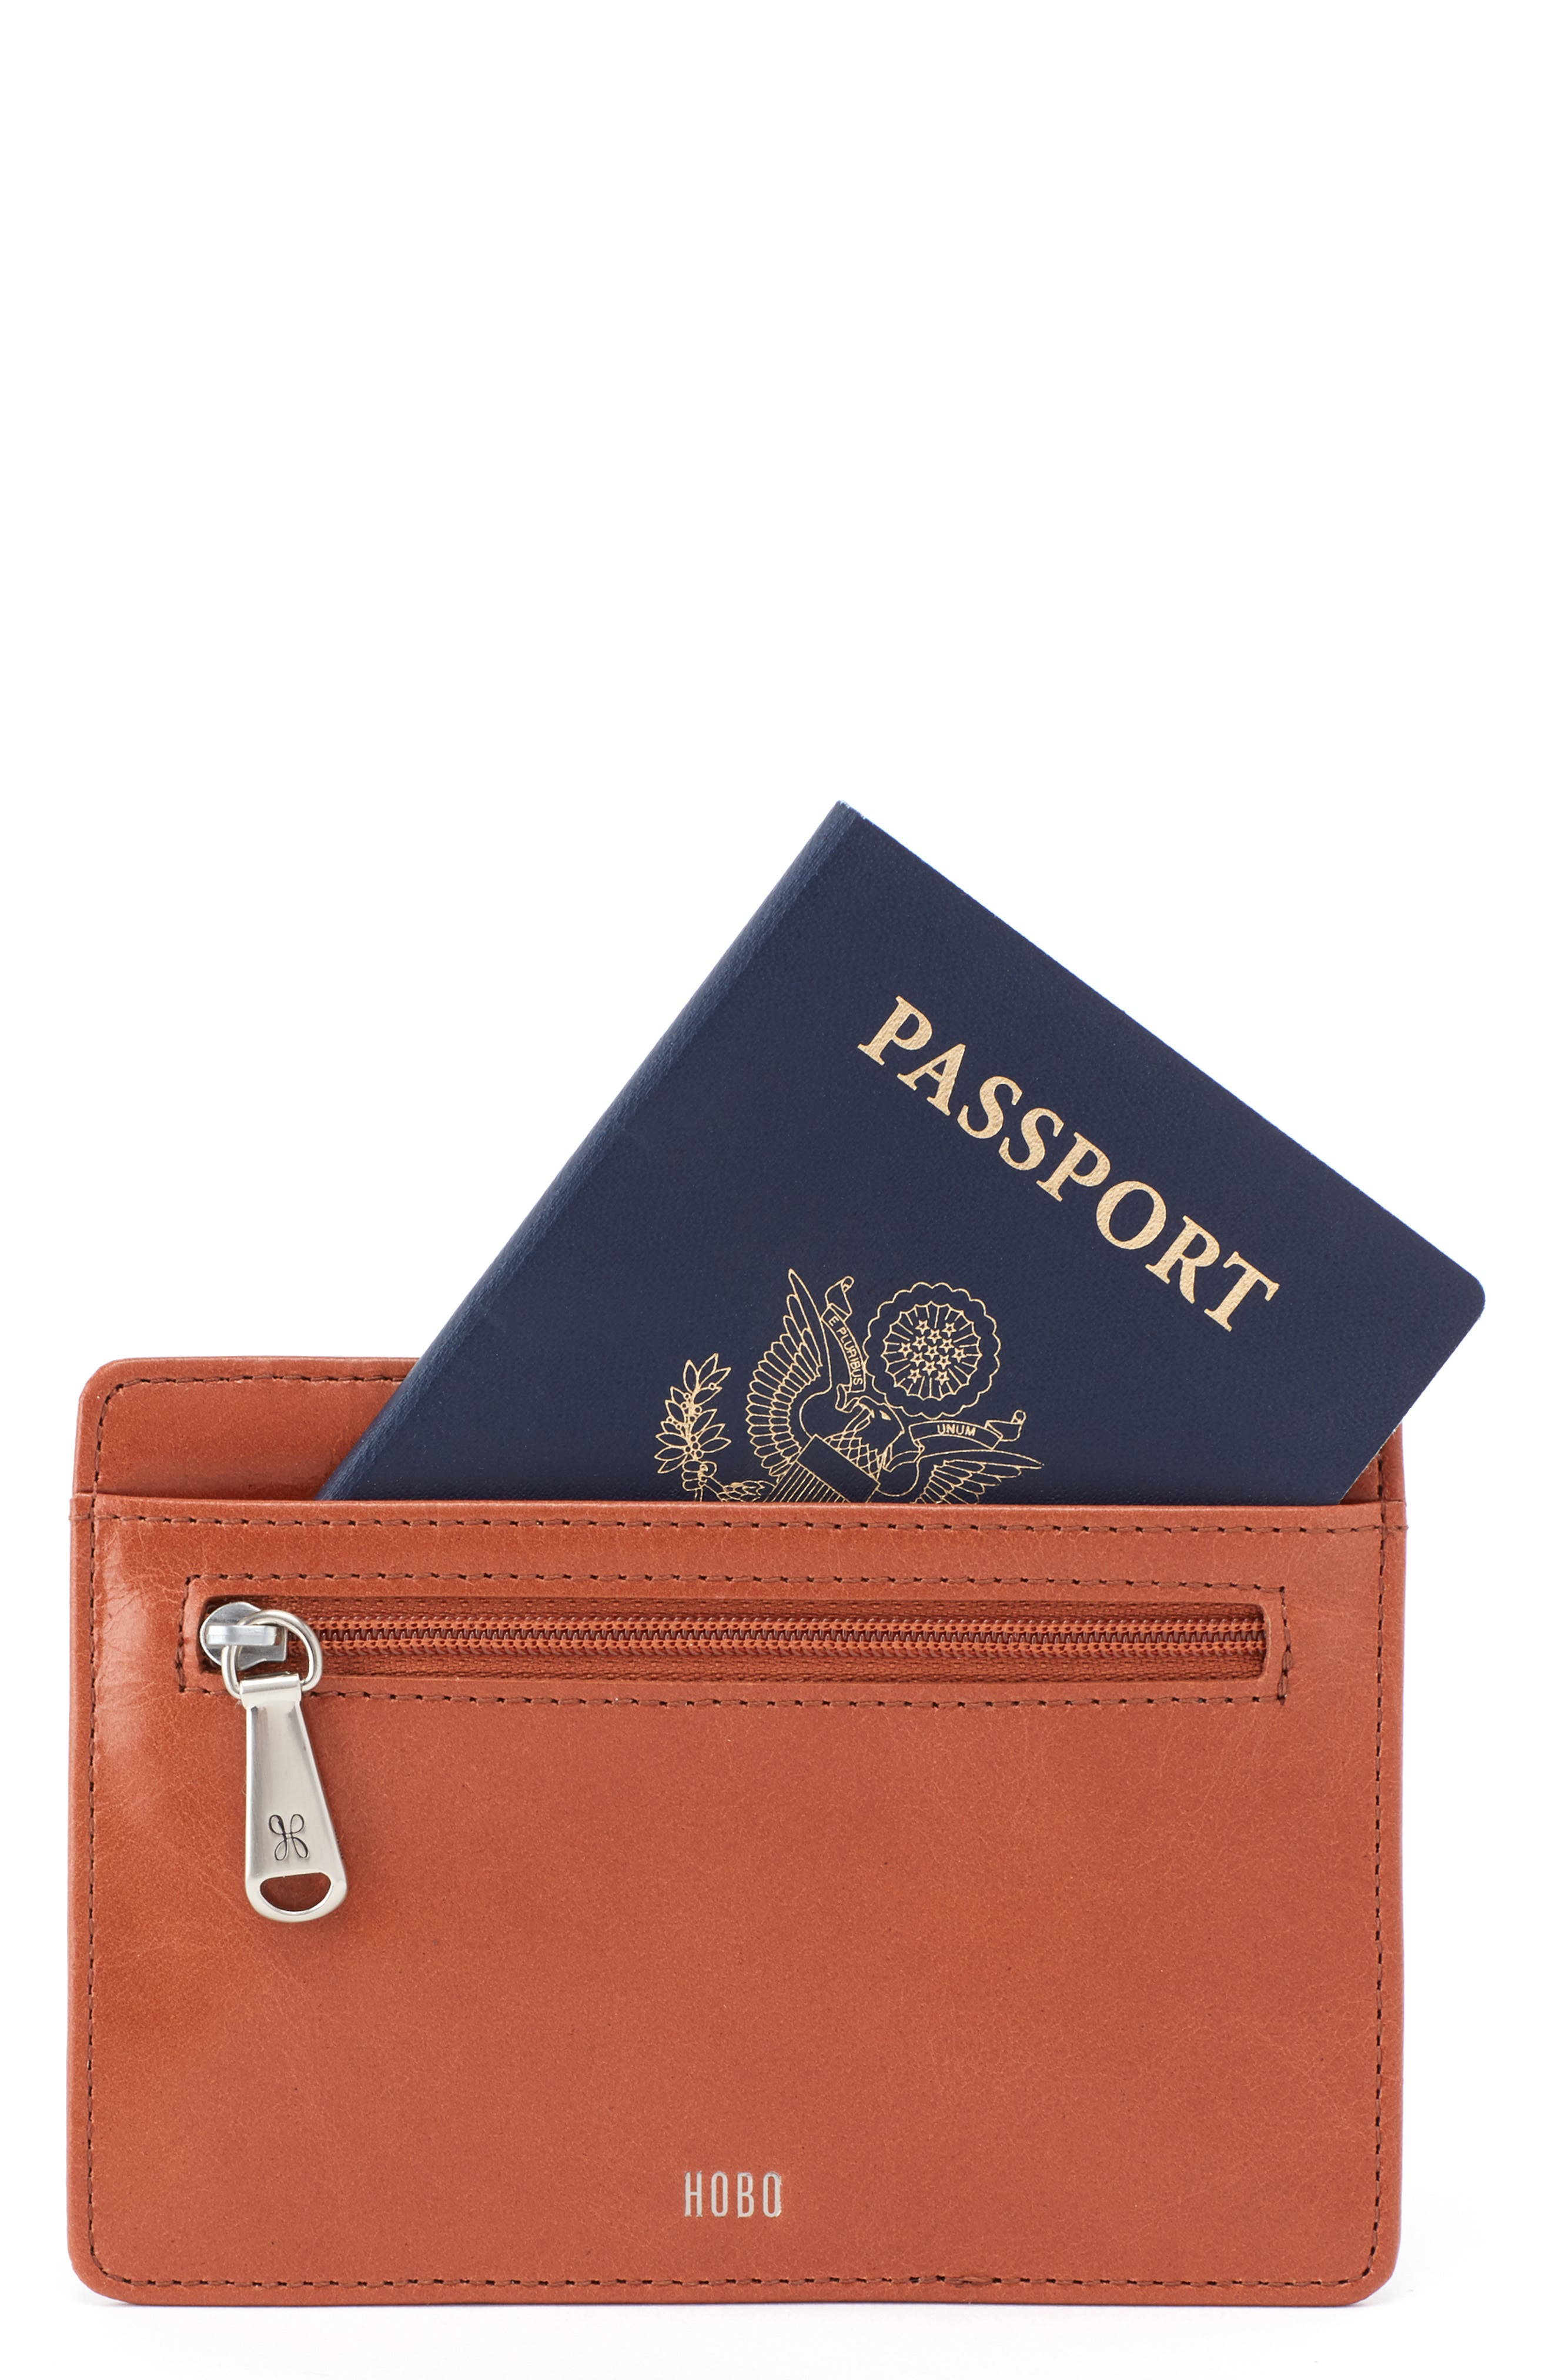 Euro Slide Credit Card & Passport Case,                             Main thumbnail 1, color,                             CLAY